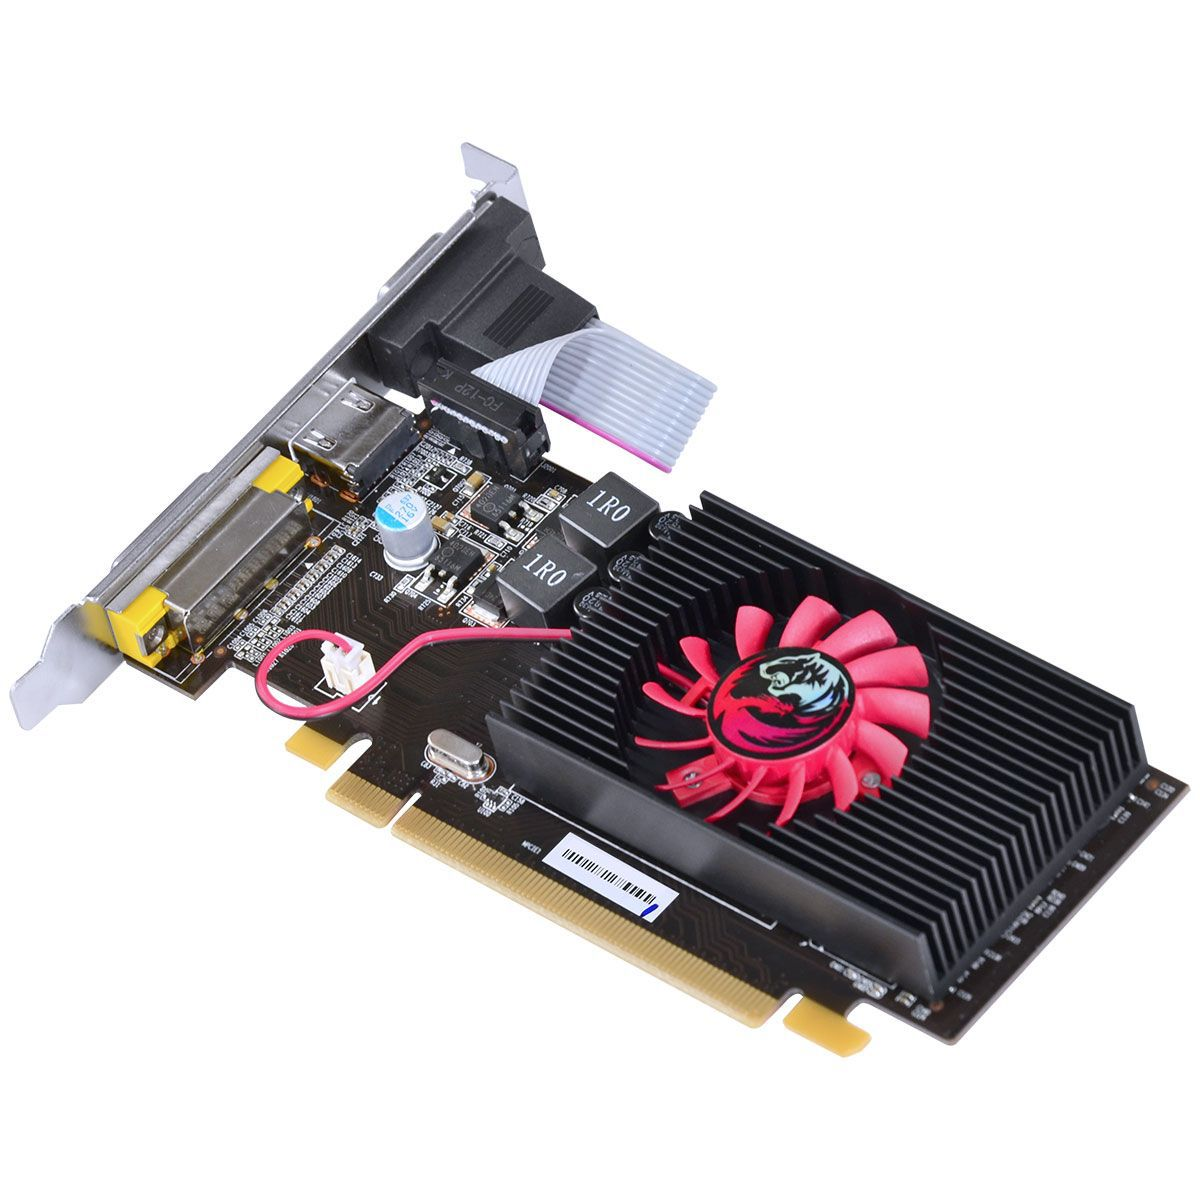 PLACA DE VIDEO R5 230 1GB 64 BITS DDR3 - PTYT230R56401D3